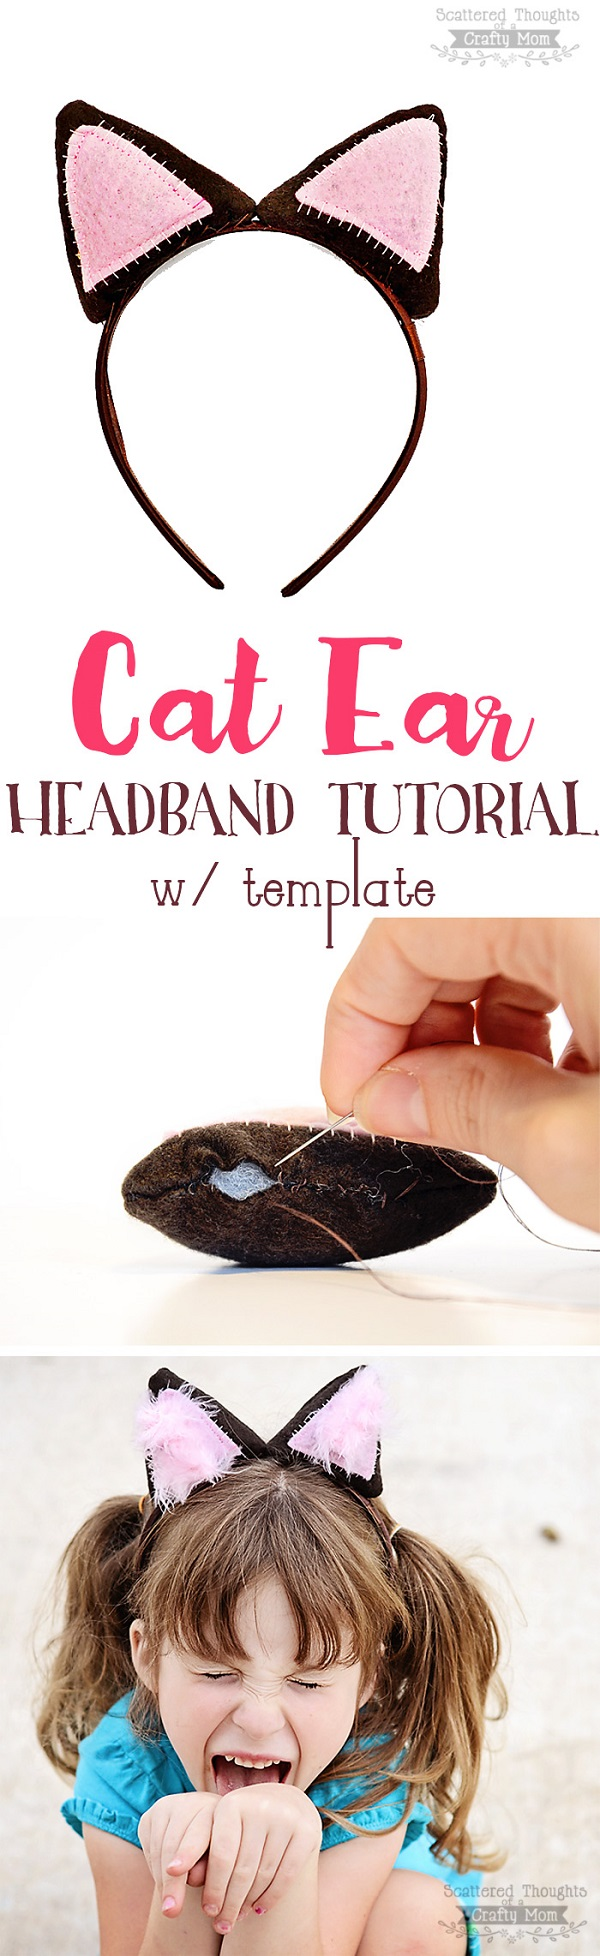 Sewing tutorial: Cat ear headband